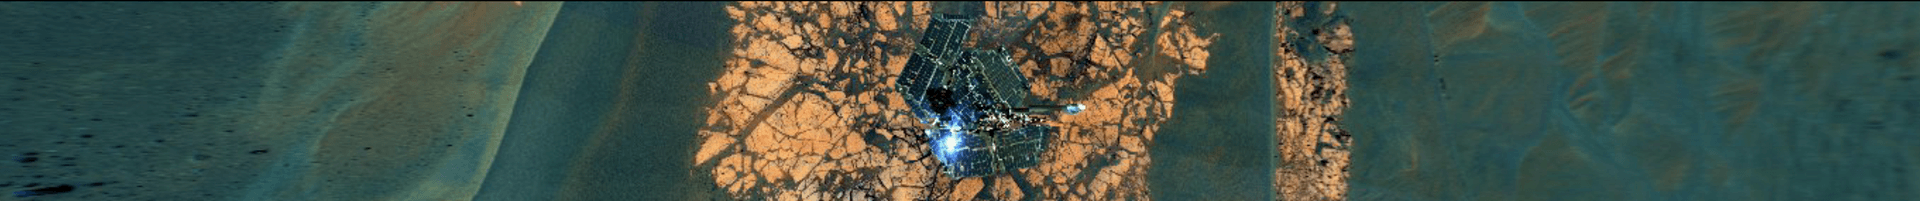 "<p>Figure 6. Archive.org.&nbsp;""NASA images,"" accessed January 9, 2020.&nbsp;<a href=""https://archive.org/details/nasa"">https://archive.org/details/nasa</a>.</p>"